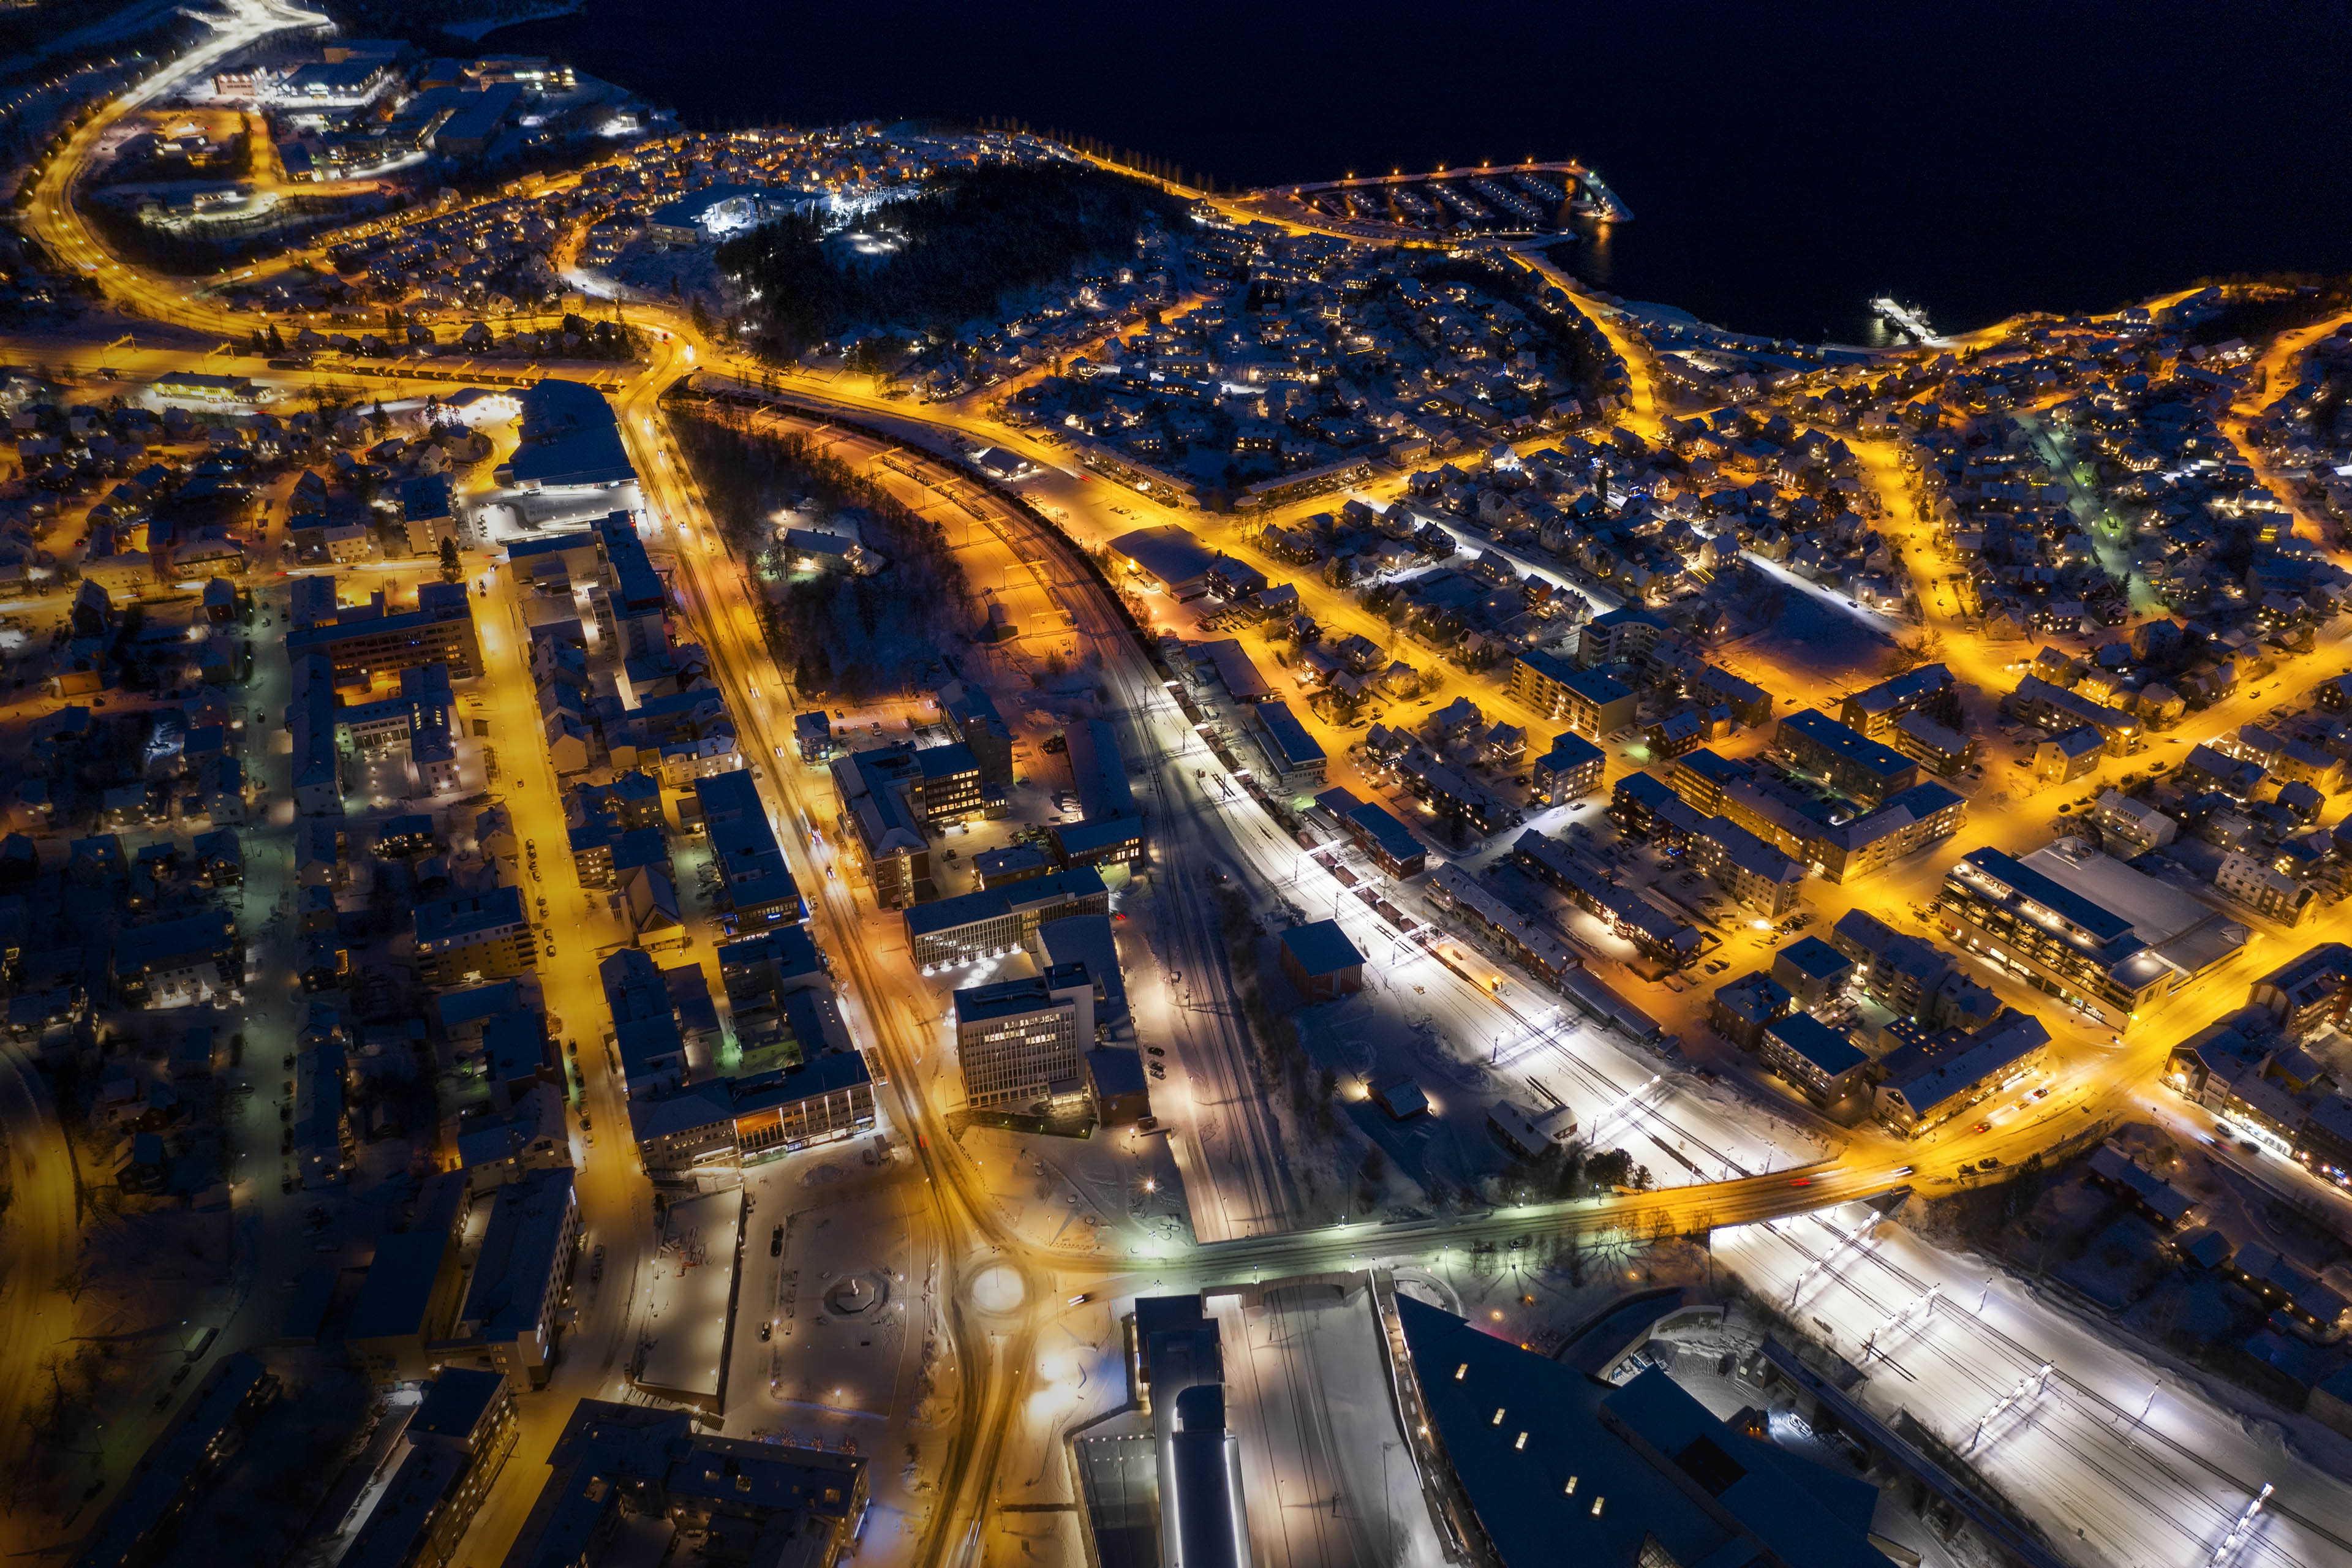 Night view of Narvik cityscape, Norway